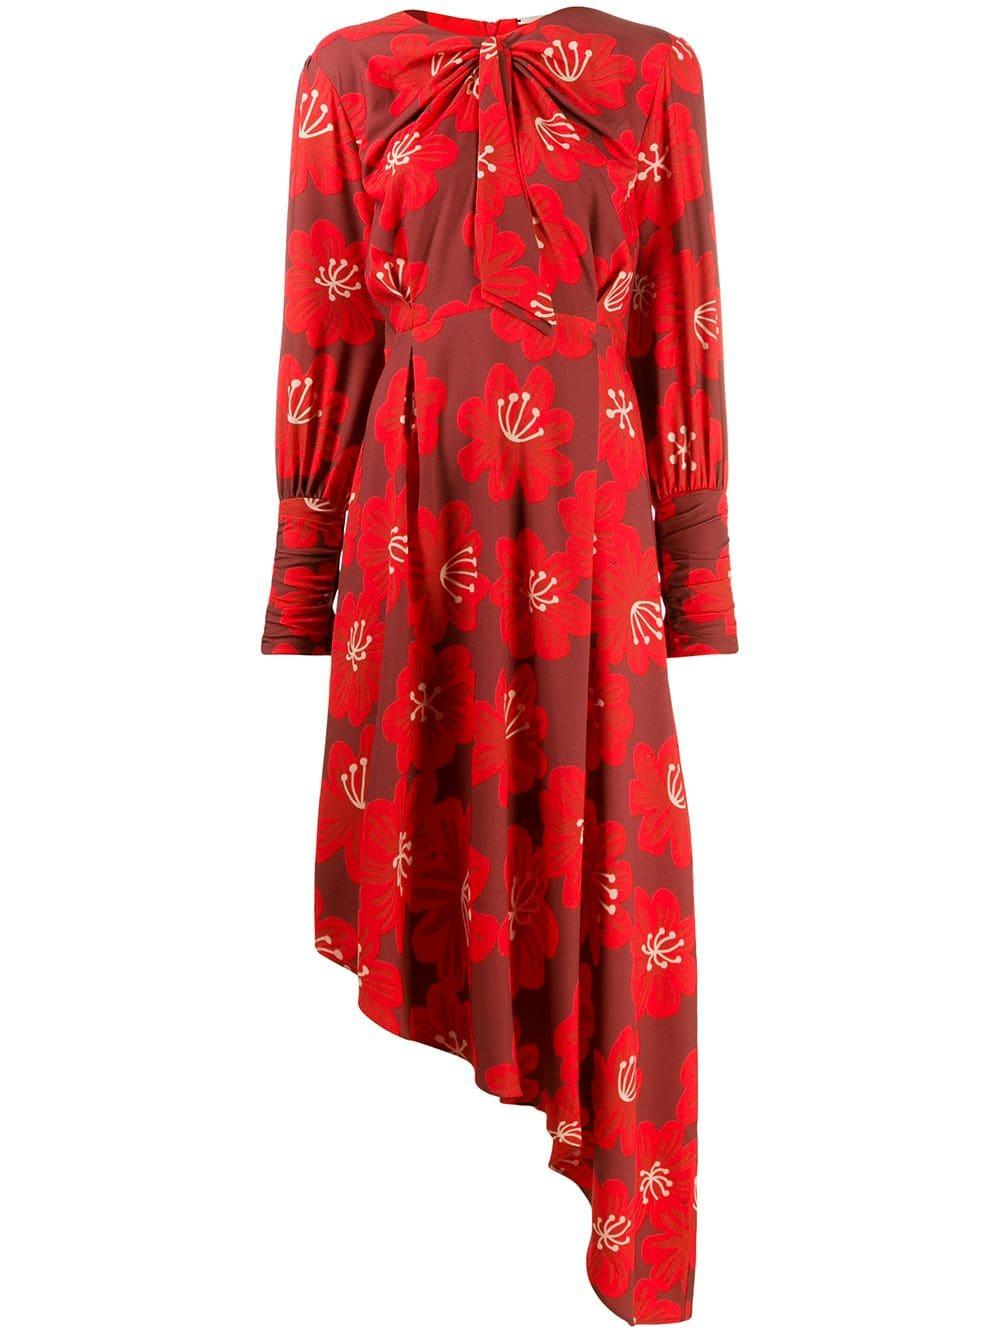 Melody Print Asym Hem Knot Neck Long Dress